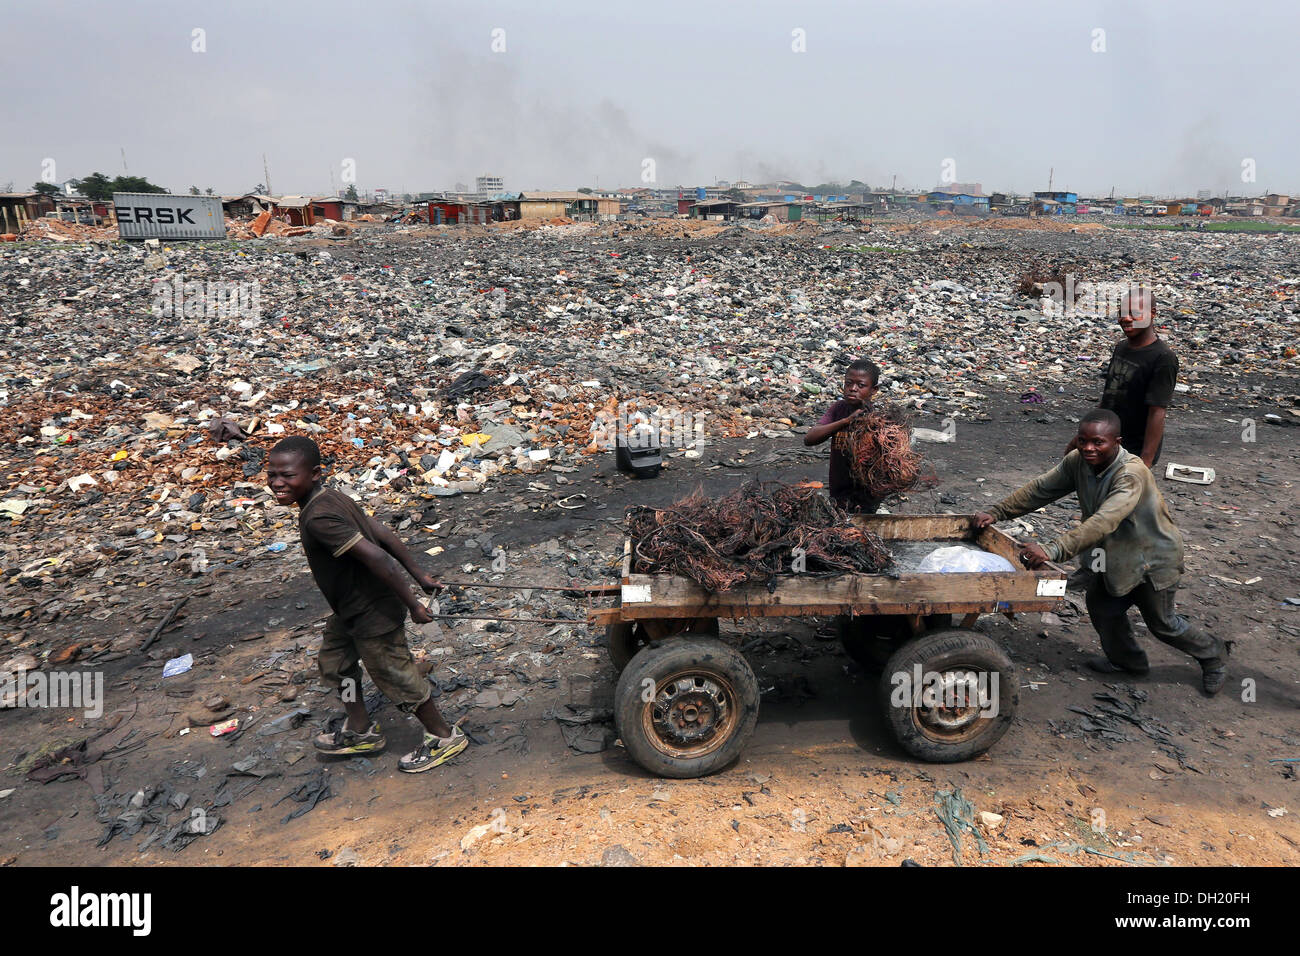 Boys pull a cart with raw copper cables from burned computers, Agbogbloshie dump site in Accra, Ghana - Stock Image